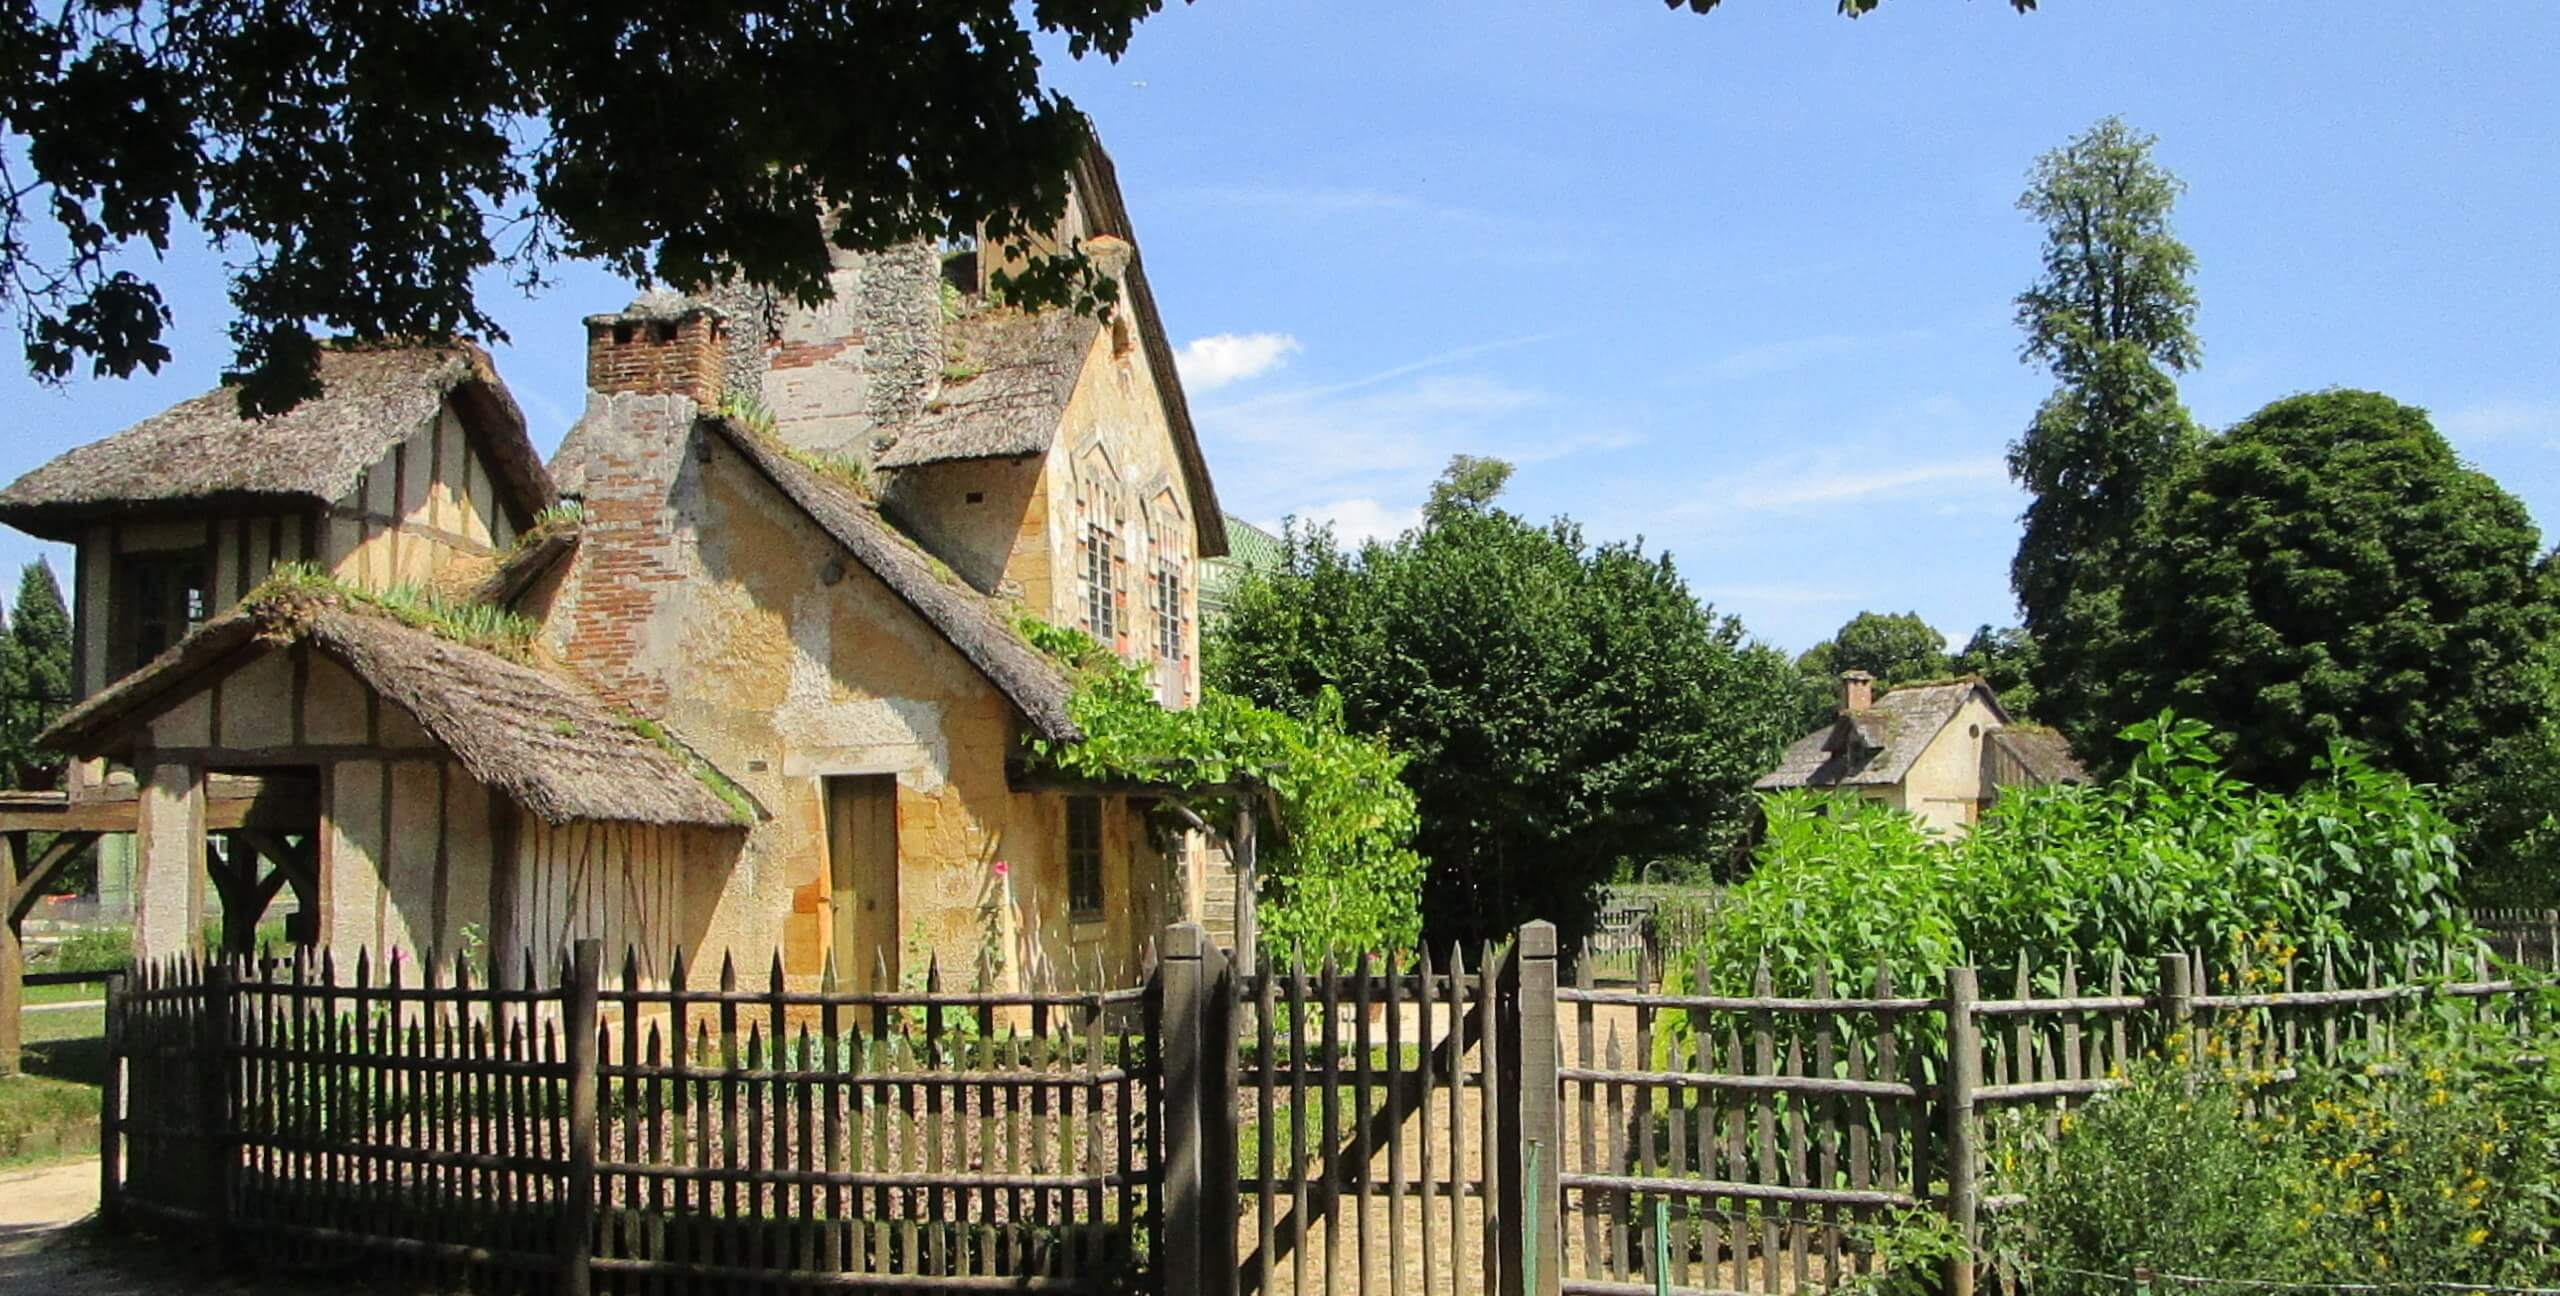 The Queen's hamlet, Marie Antoinette's estate